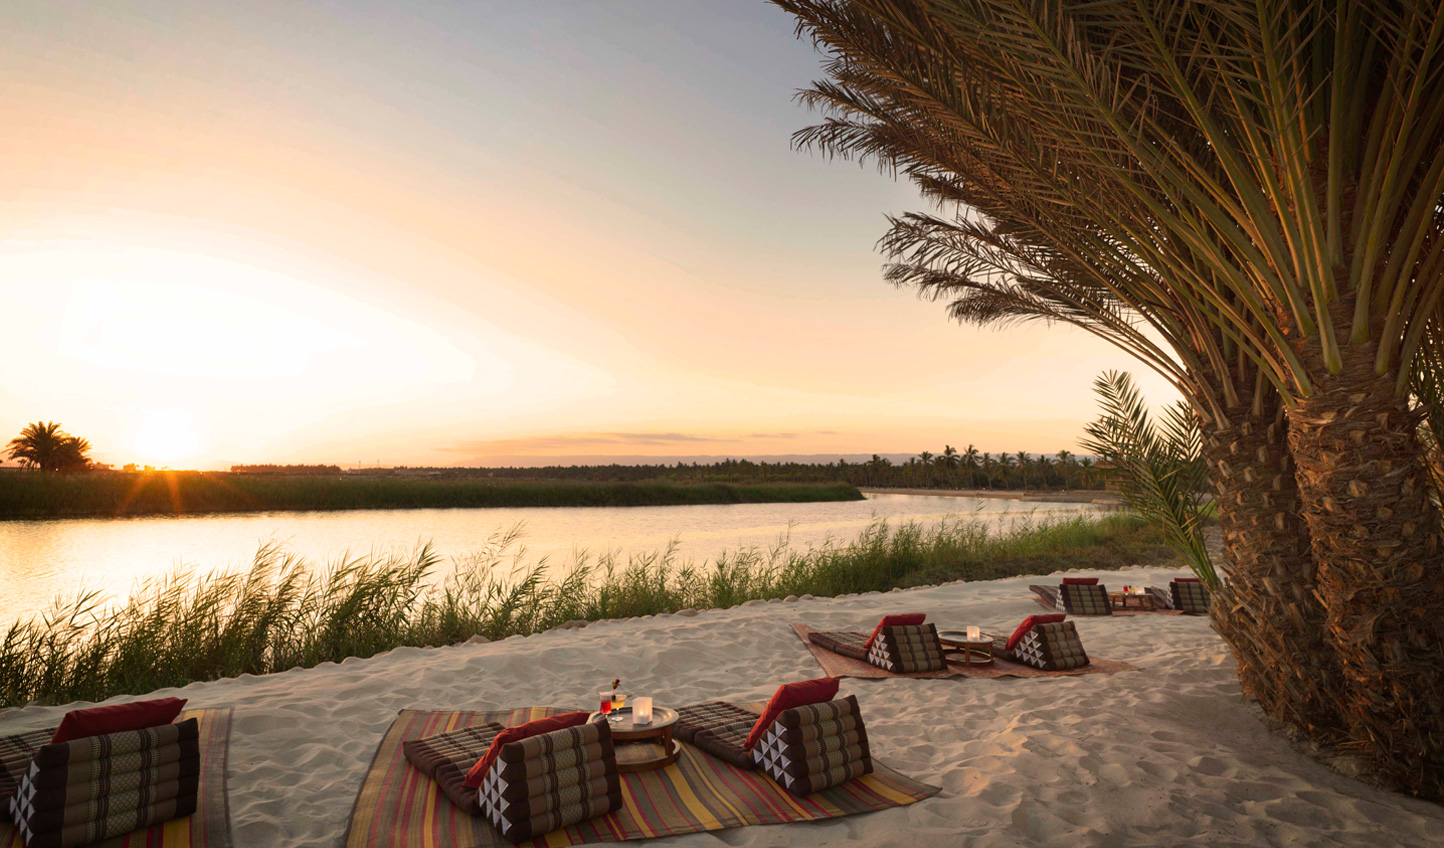 Swap the beach and pool for views of the natural freshwater lagoon at sundown